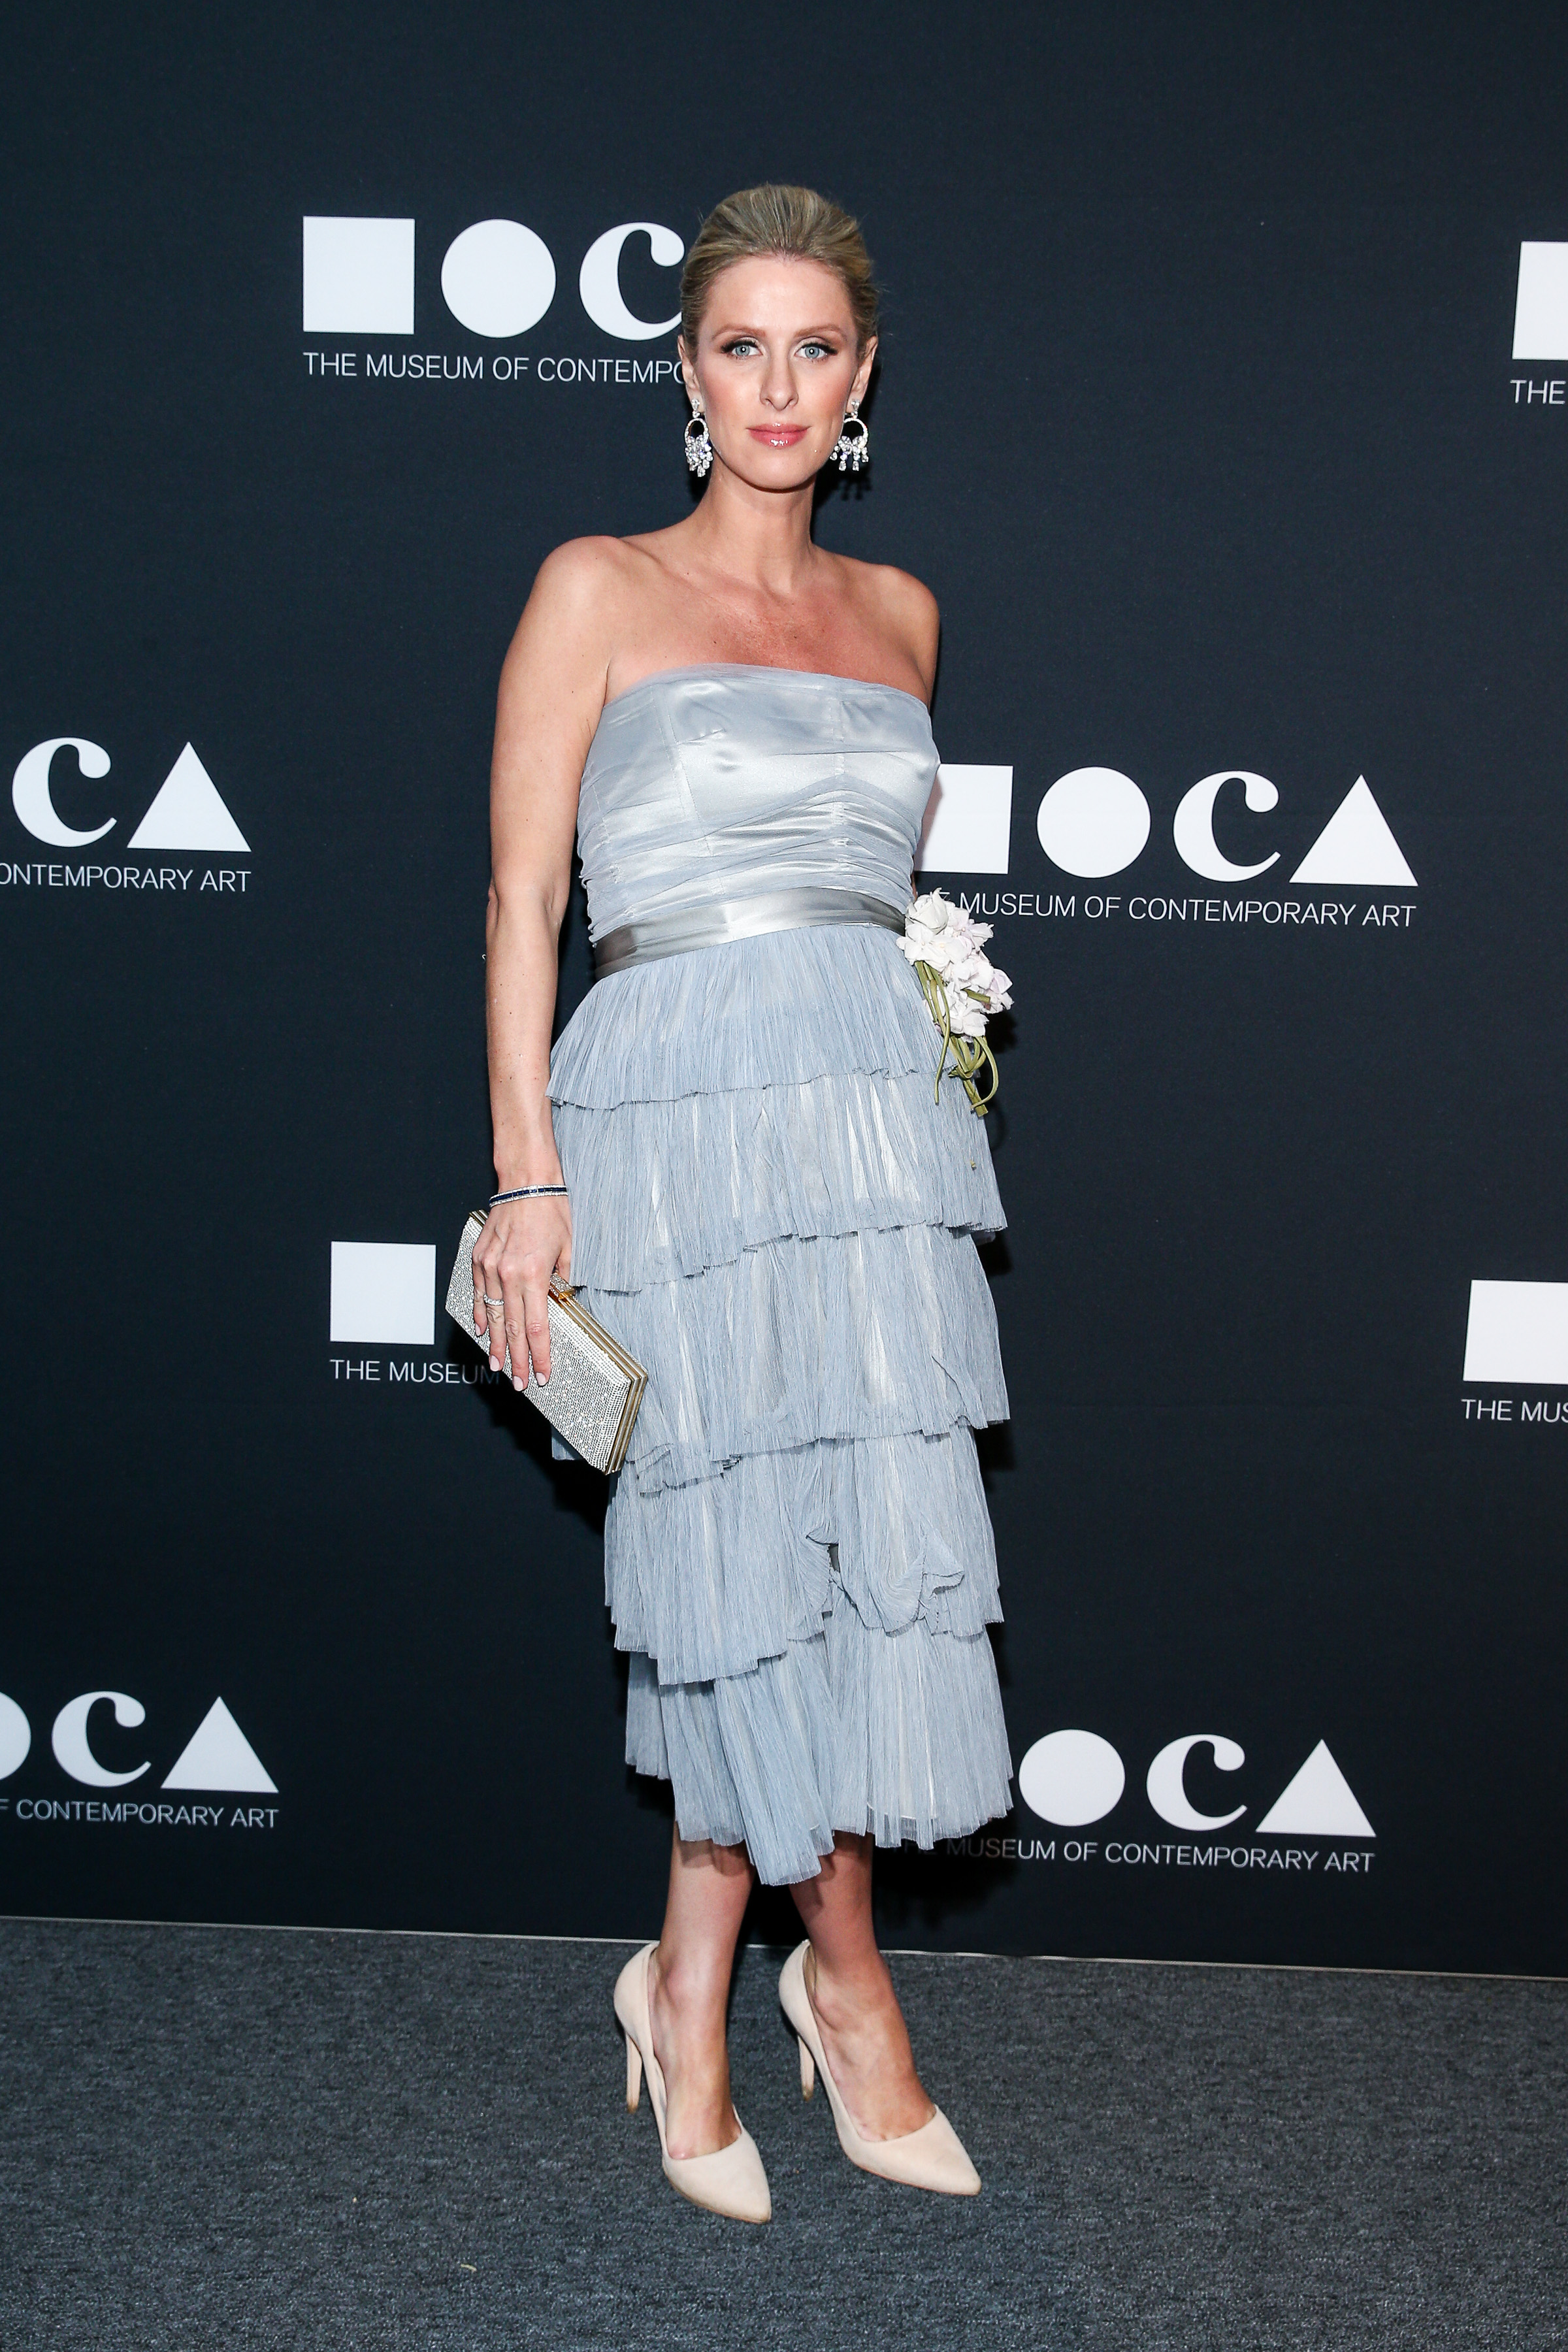 MOCA Annual Gala 2016 - The Museum of Contemporary Art, Los Angeles